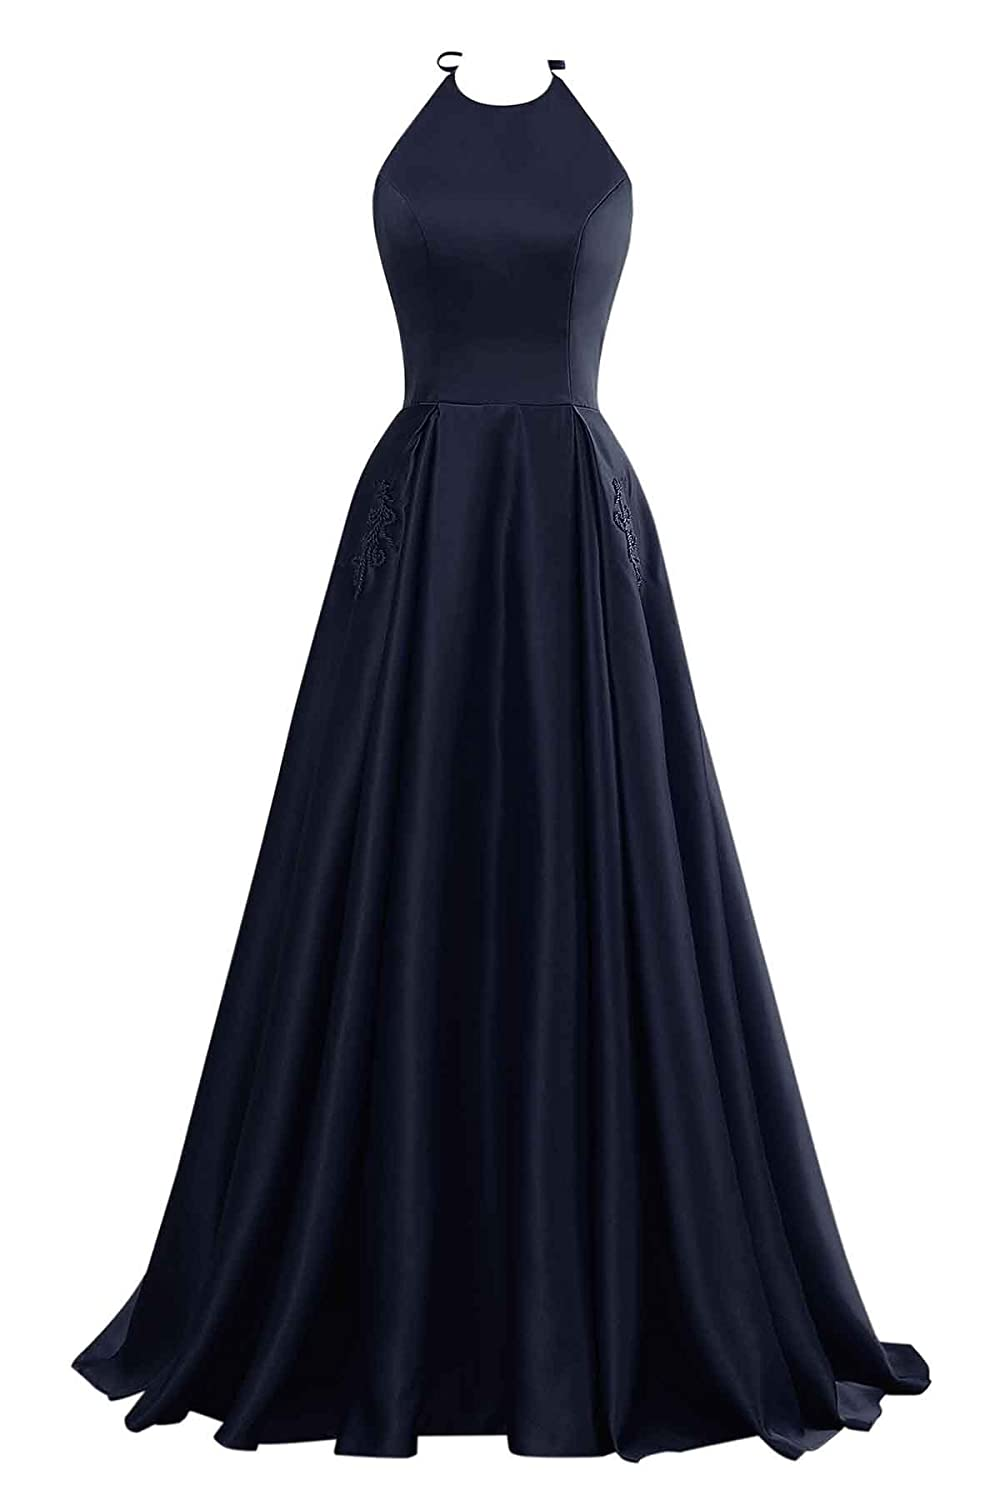 Navy Changuan Halter Aline Satin Evening Prom Dresses for Women Beaded Long Formal Gown with Pockets